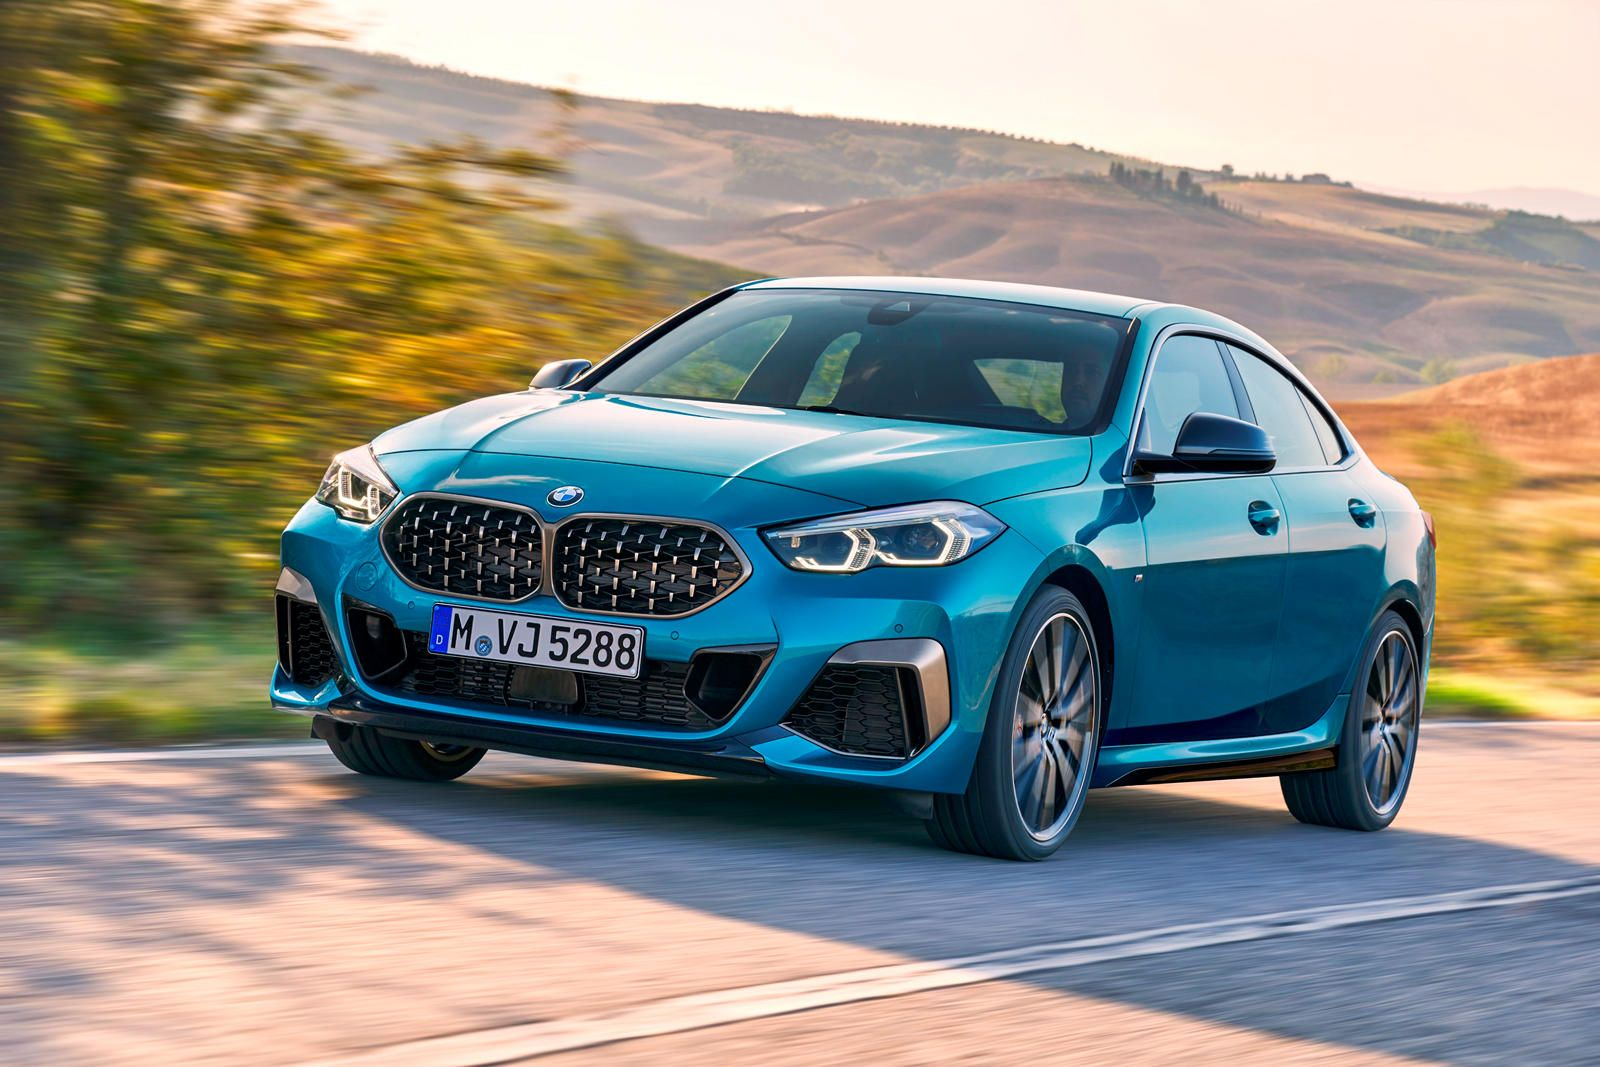 2020 Bmw 2 Series Gran Coupe First Look Review A New Era Begins